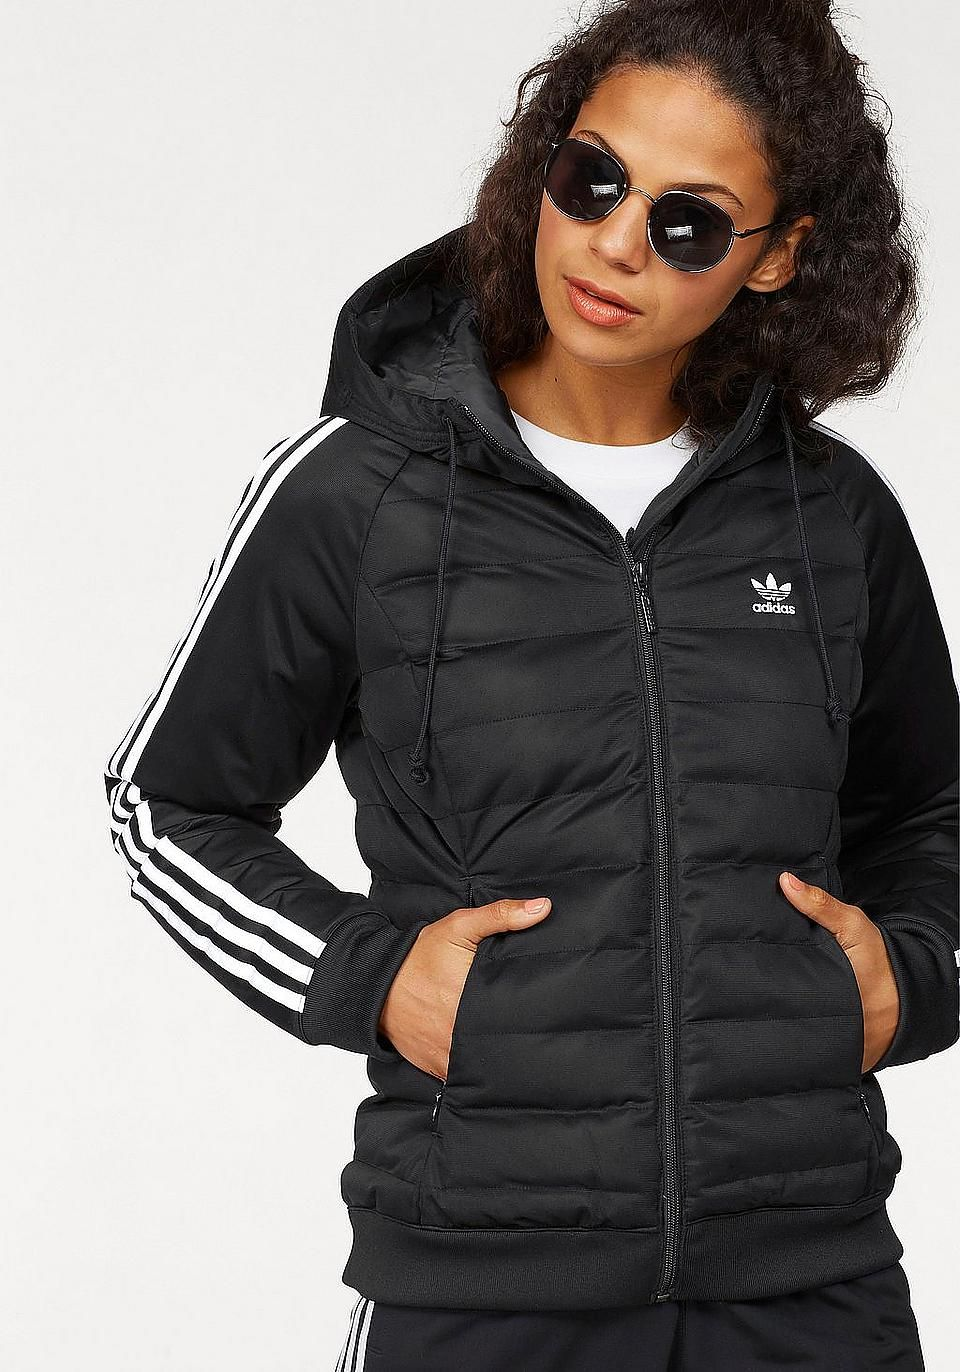 adidas Originals Steppjacke »SLIM JACKET« kaufen | Jacken